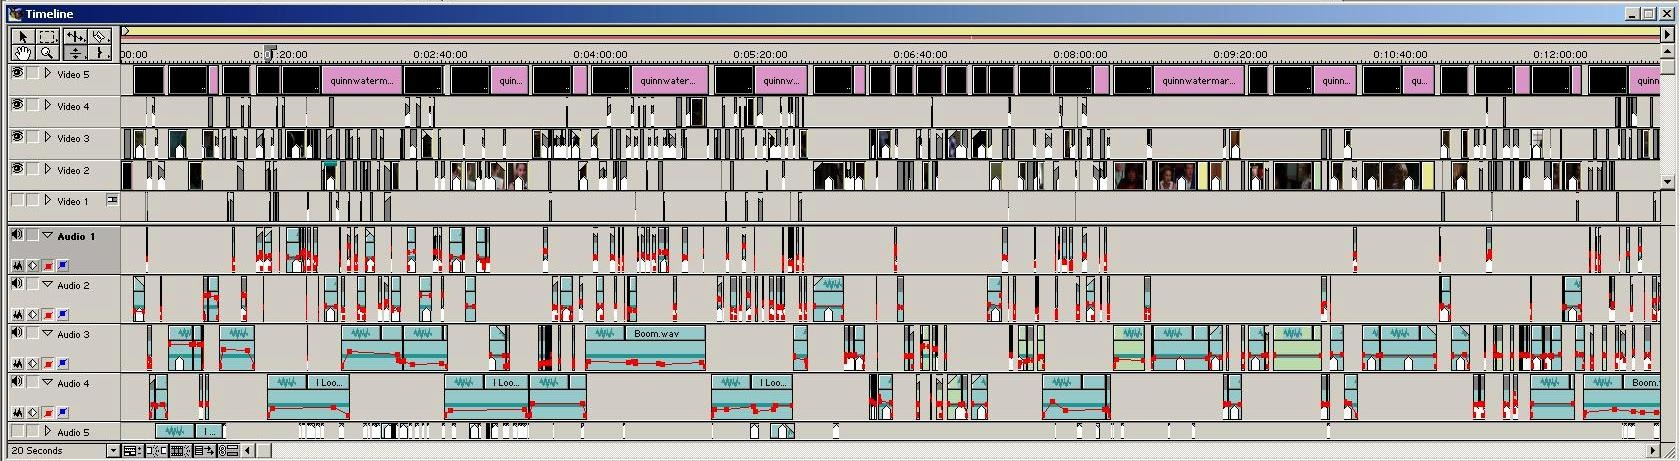 Computer screen labeled Timeline showing complex interplay of multiple streams of data, including 5 video streams and 5 audio streams, horizontally across the screen.